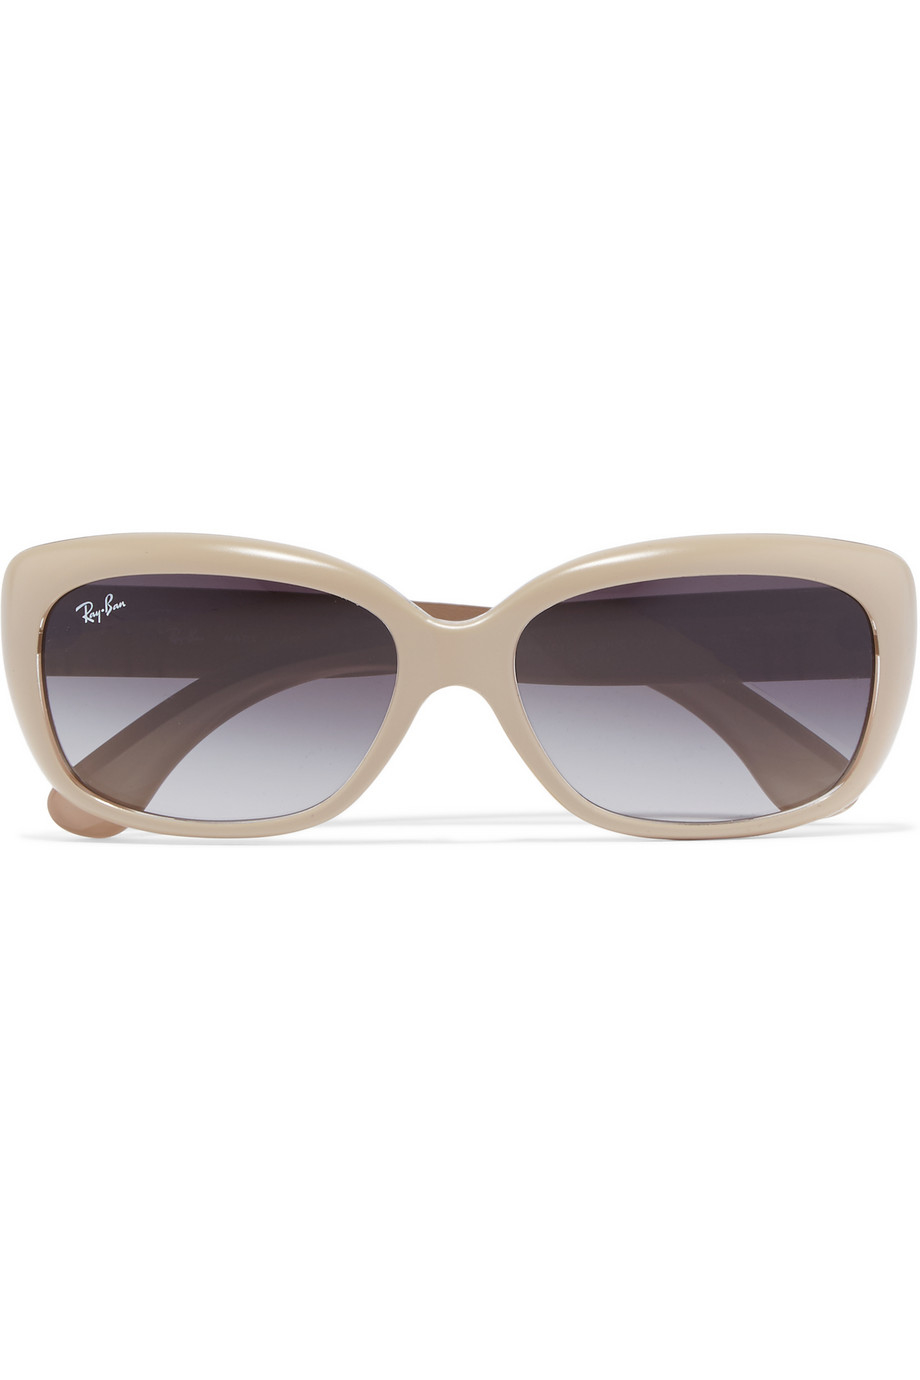 3d2862188215 ... where to buy ray ban square frame acetate sunglasses in natural lyst  edcc1 130d7